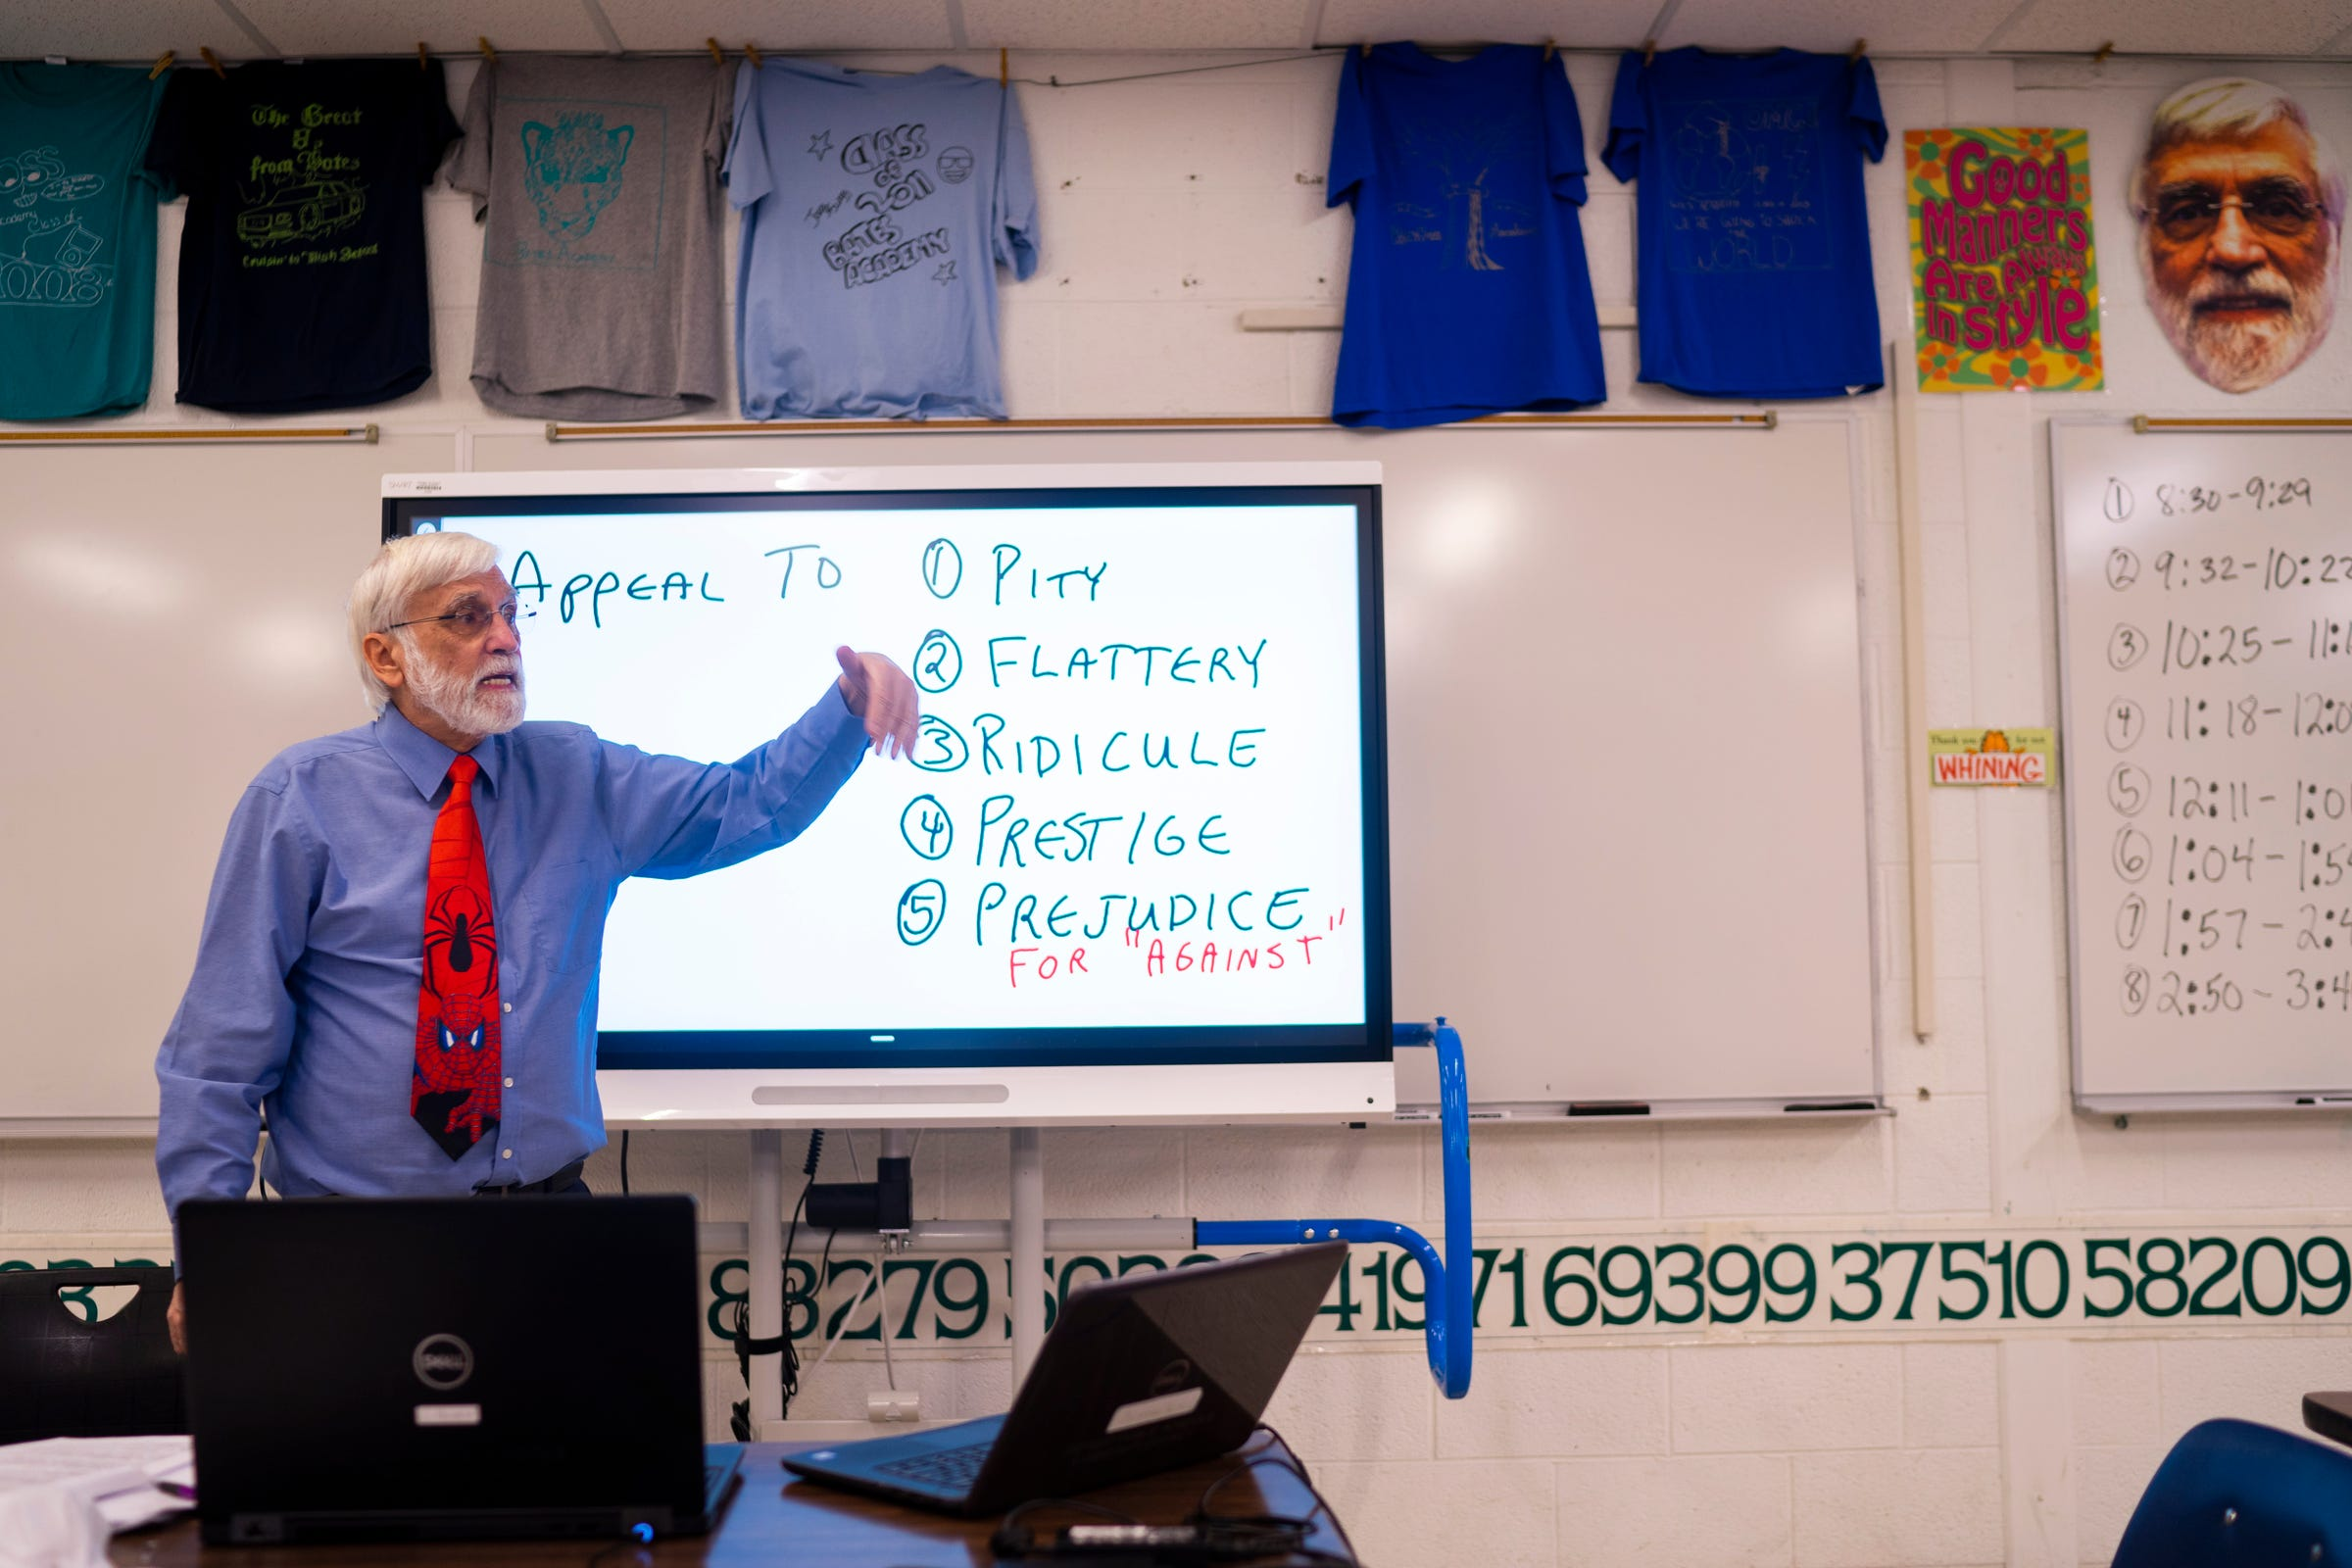 """Christopher Holstein discusses segments of propaganda techniques during a virtual practice for an upcoming competition in the Academic Games on Feb. 4, 2021 at Bates Academy in Detroit. Holstein, an educator of 52 years, is celebrating his 45th year as an Academic Games coach. """"It keeps me going,"""" Holstein said regarding the Academic Games."""